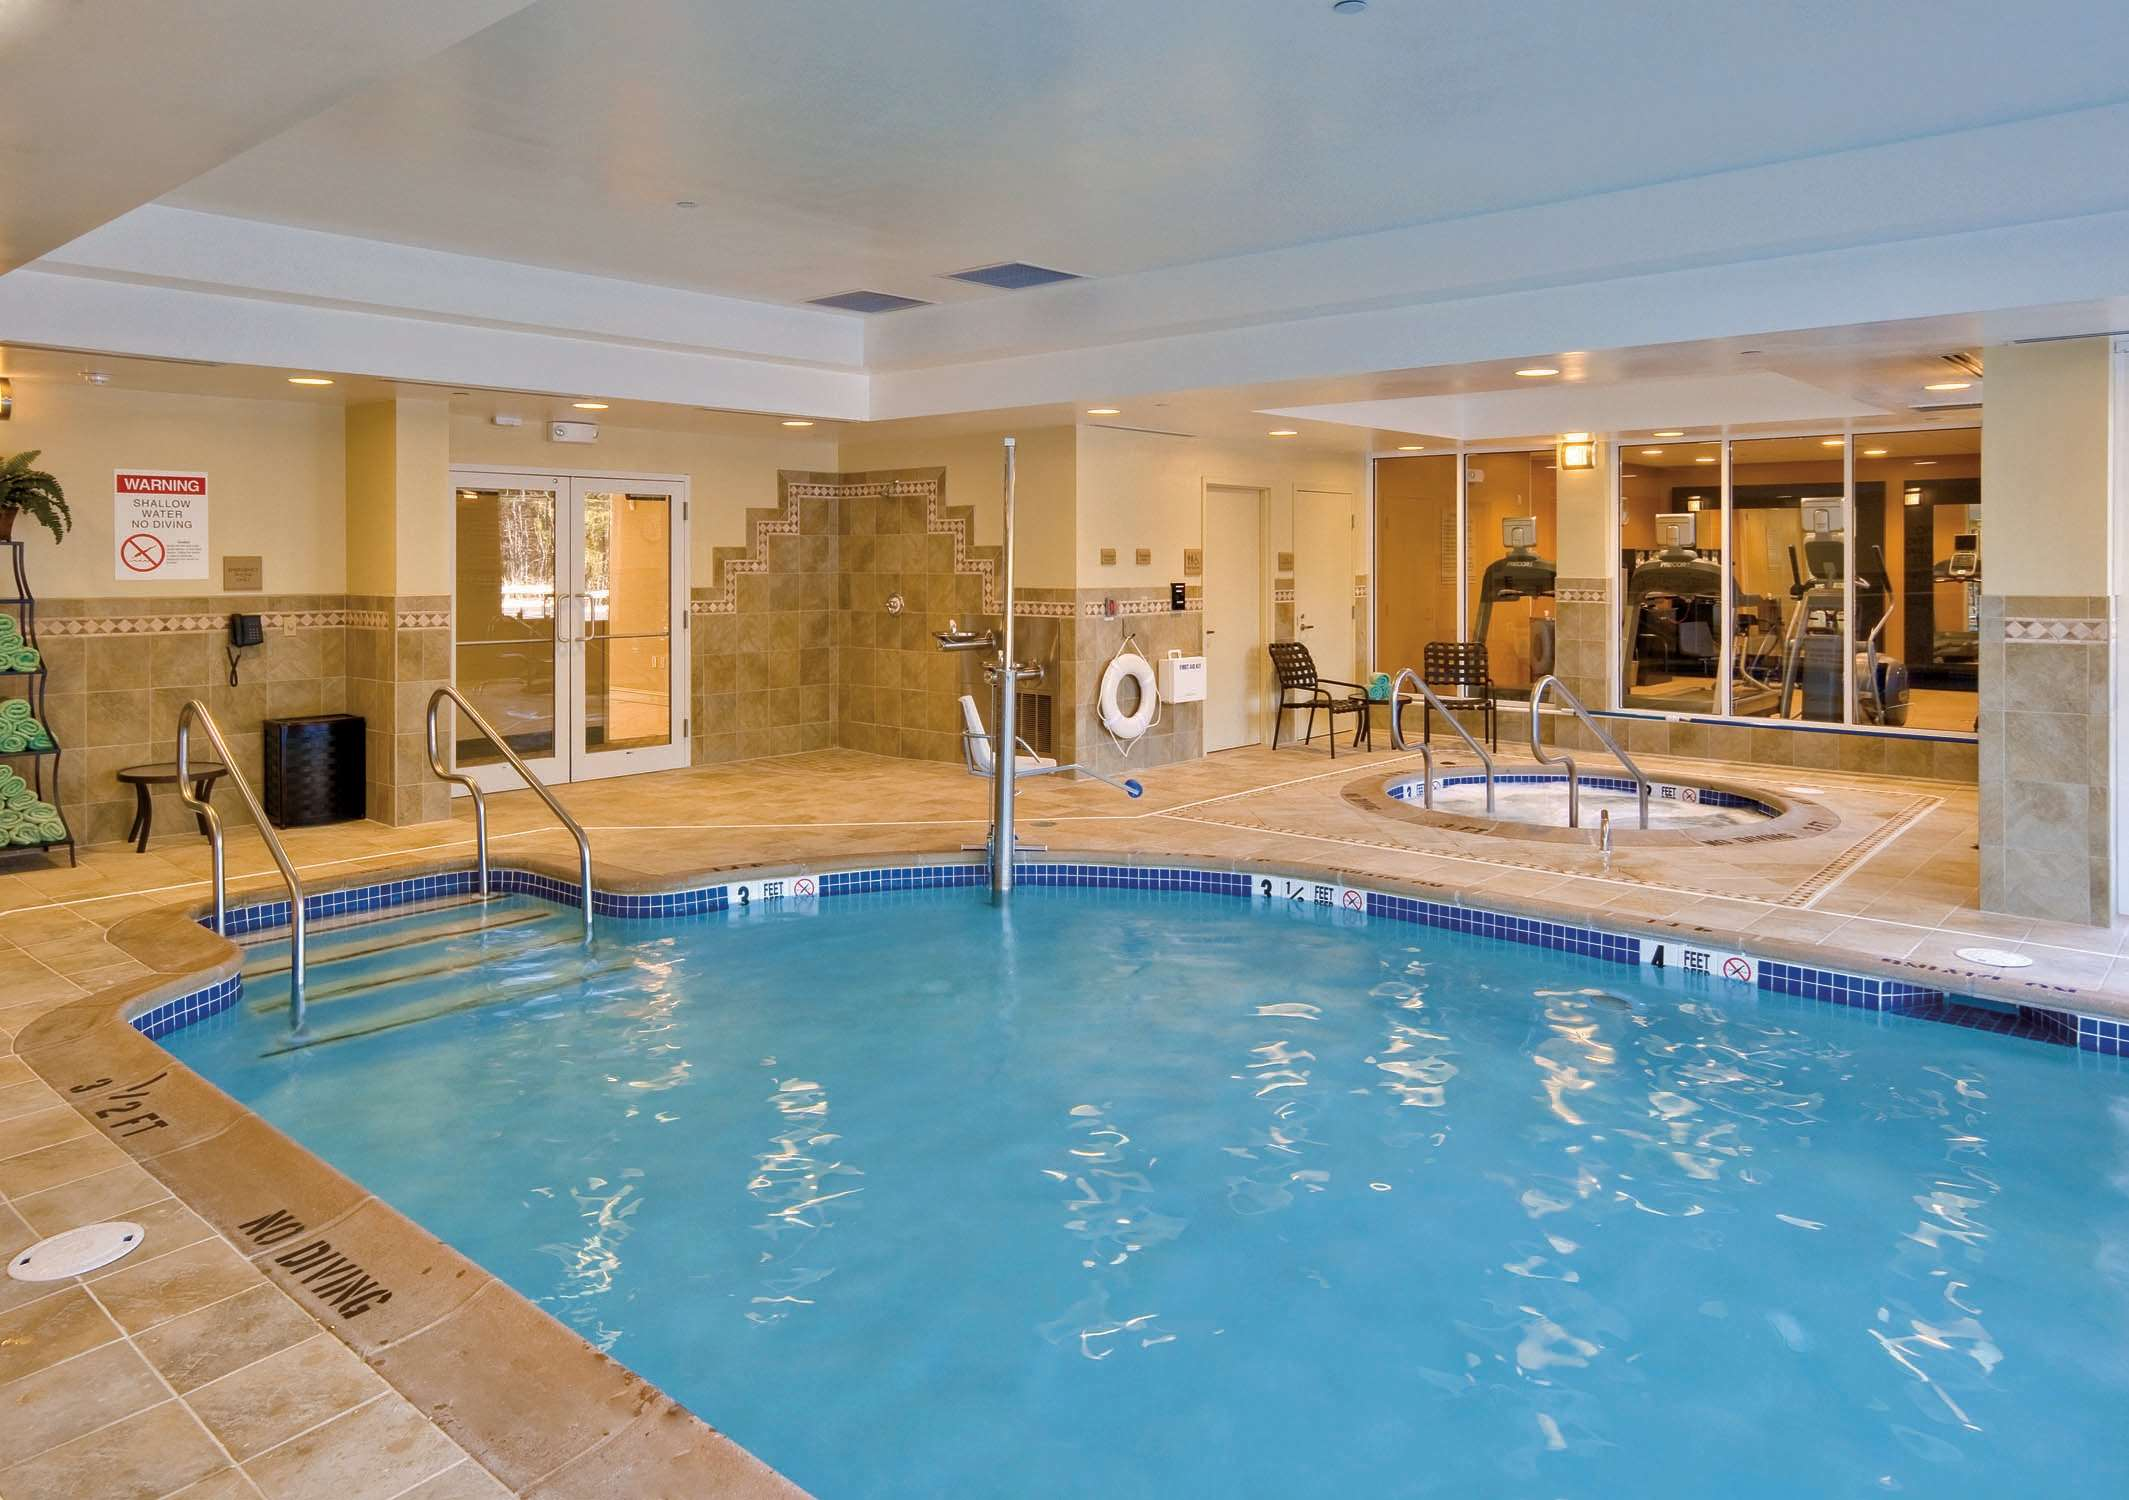 Hilton Garden Inn Lakewood In Lakewood Nj Hotels Motels Yellow Pages Directory Inc